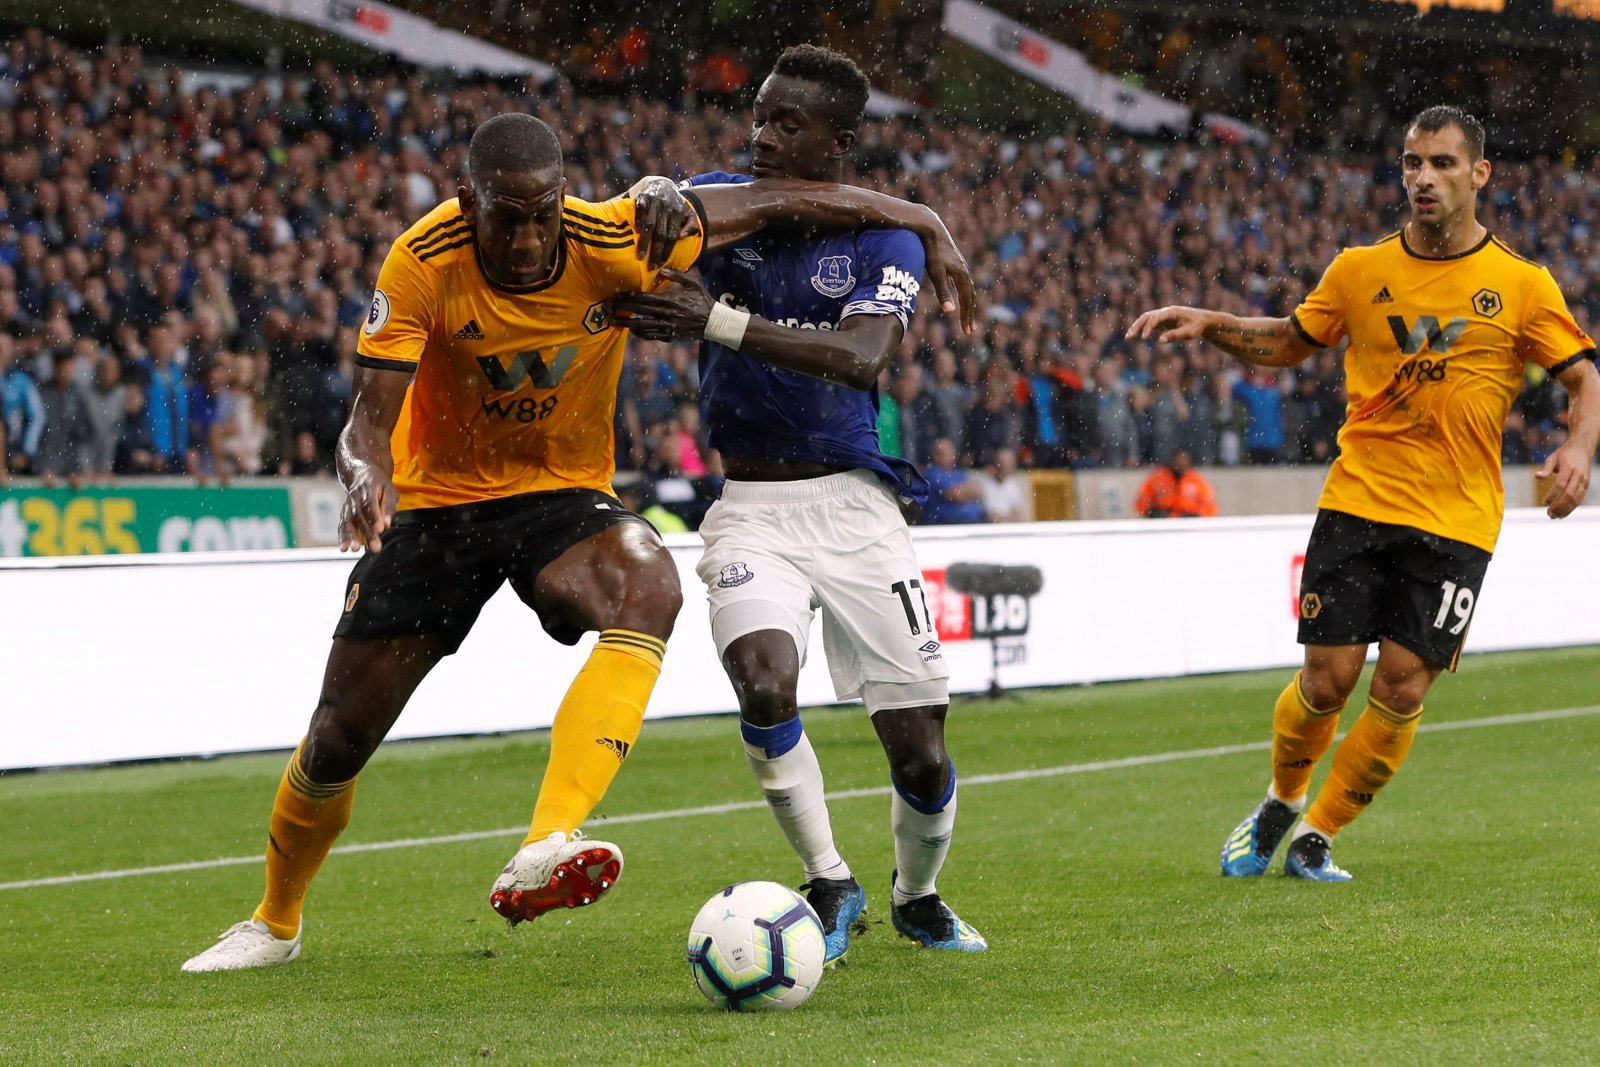 Richarlison may have dazzled for Everton, yet Idrissa Gueye was their unsung hero in Wolves draw